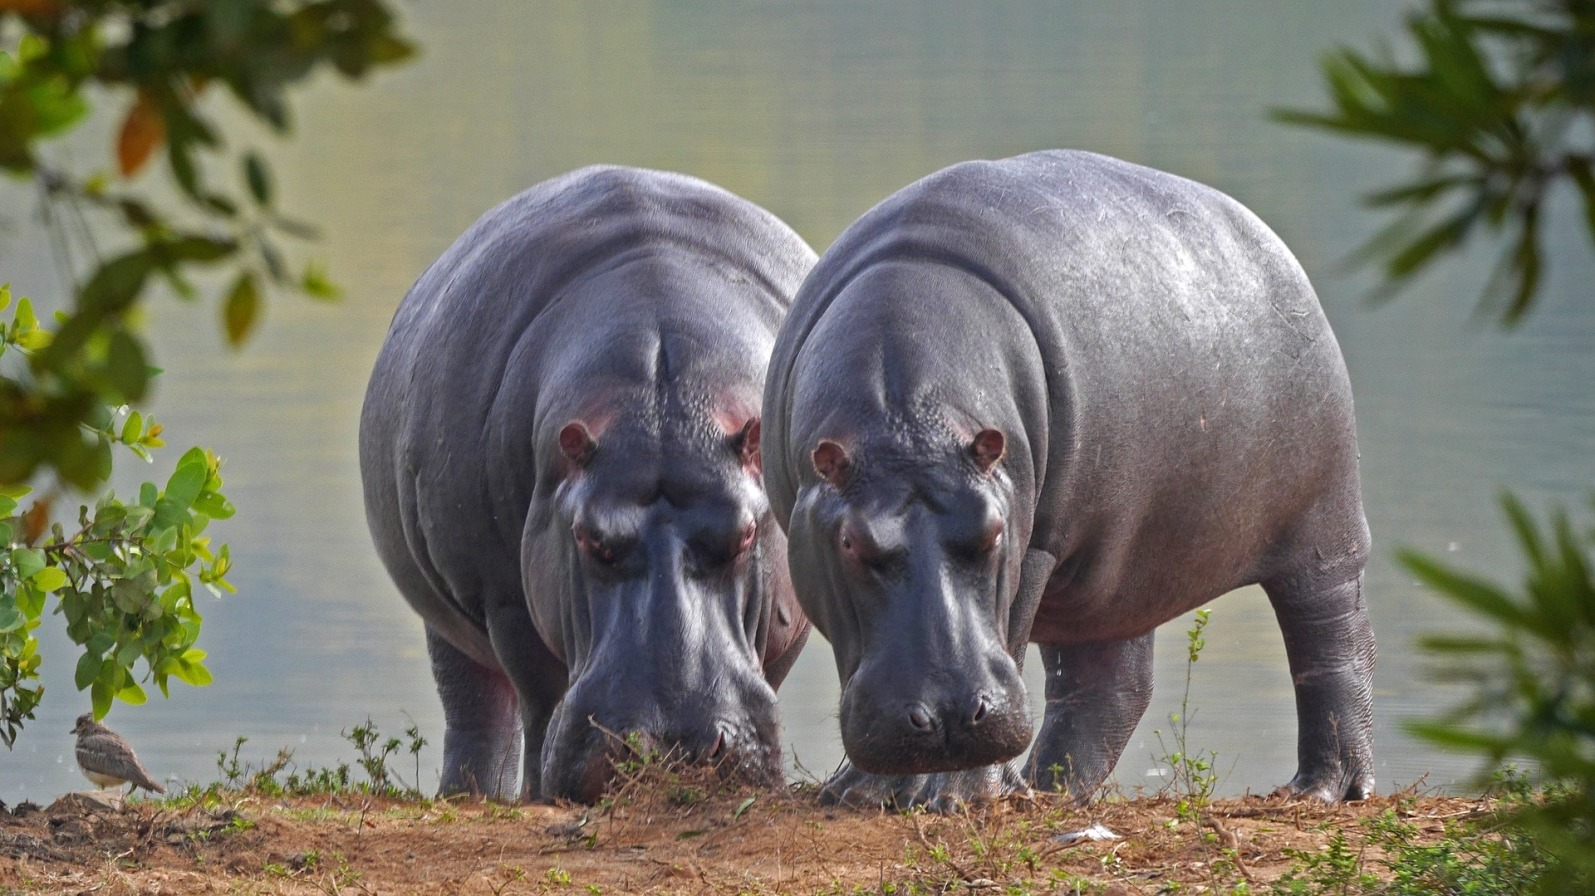 Hippos Near Water - Original image